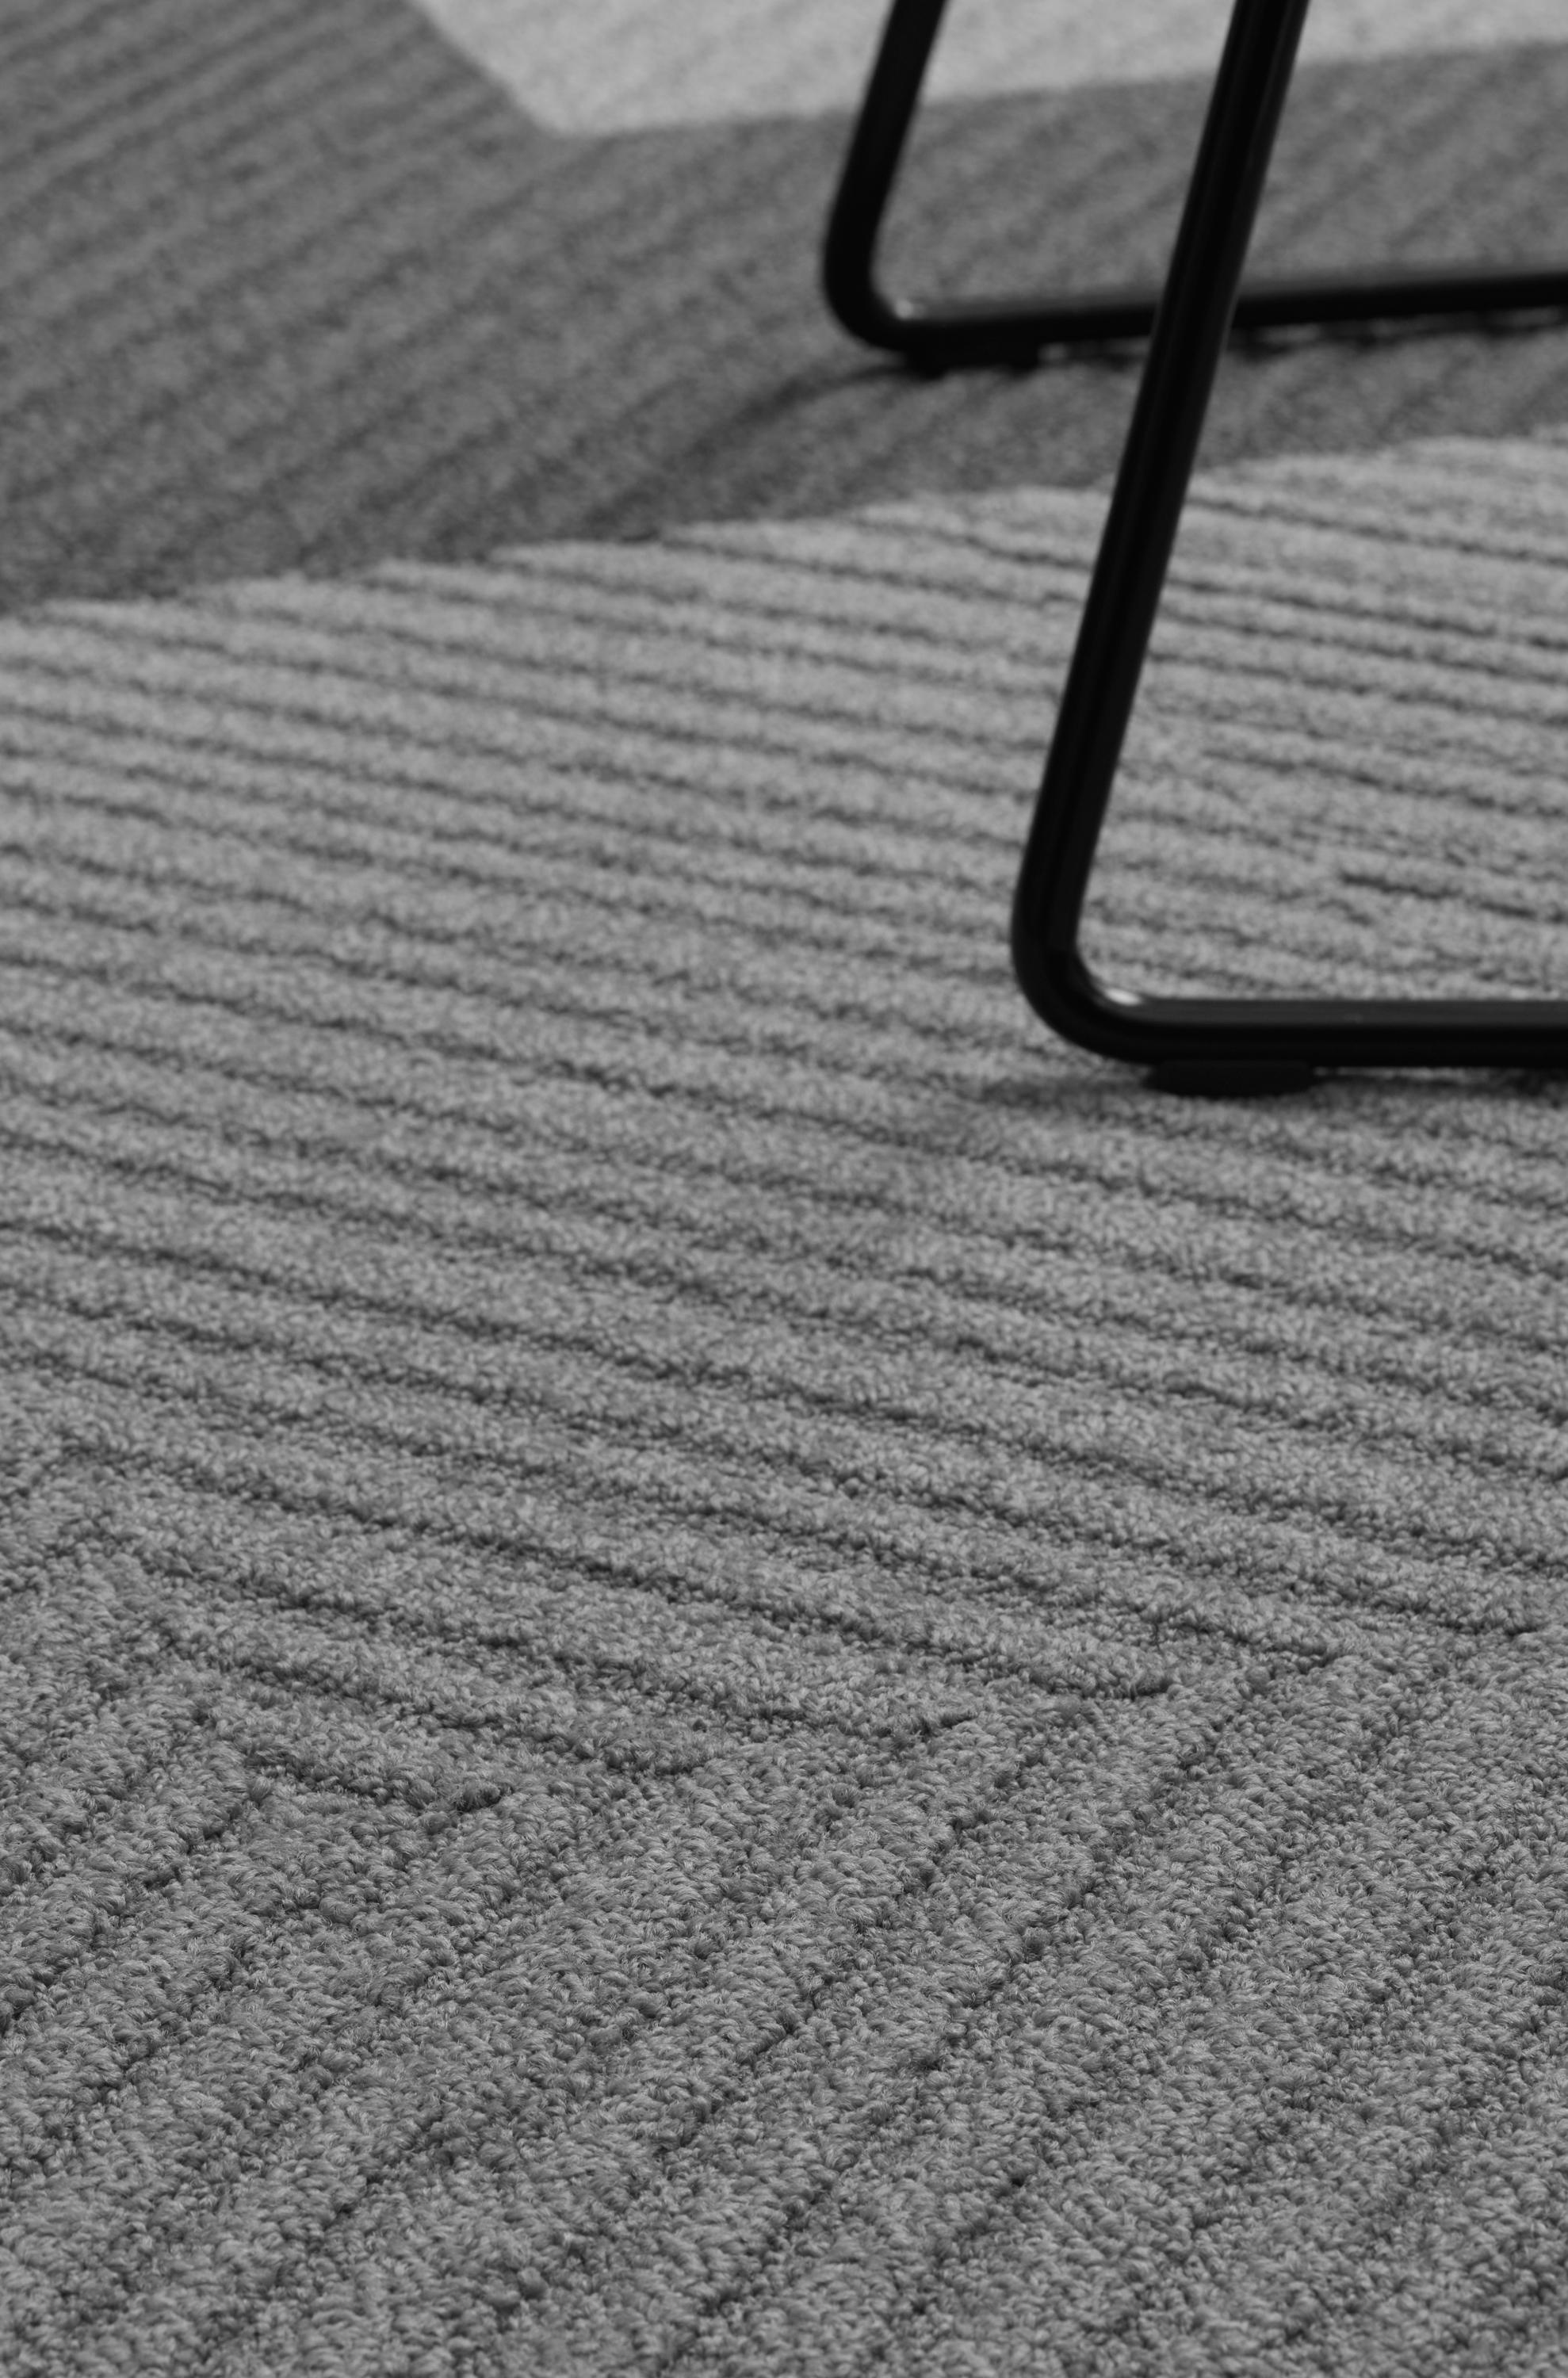 Traverse Carpet Tiles From Desso Architonic